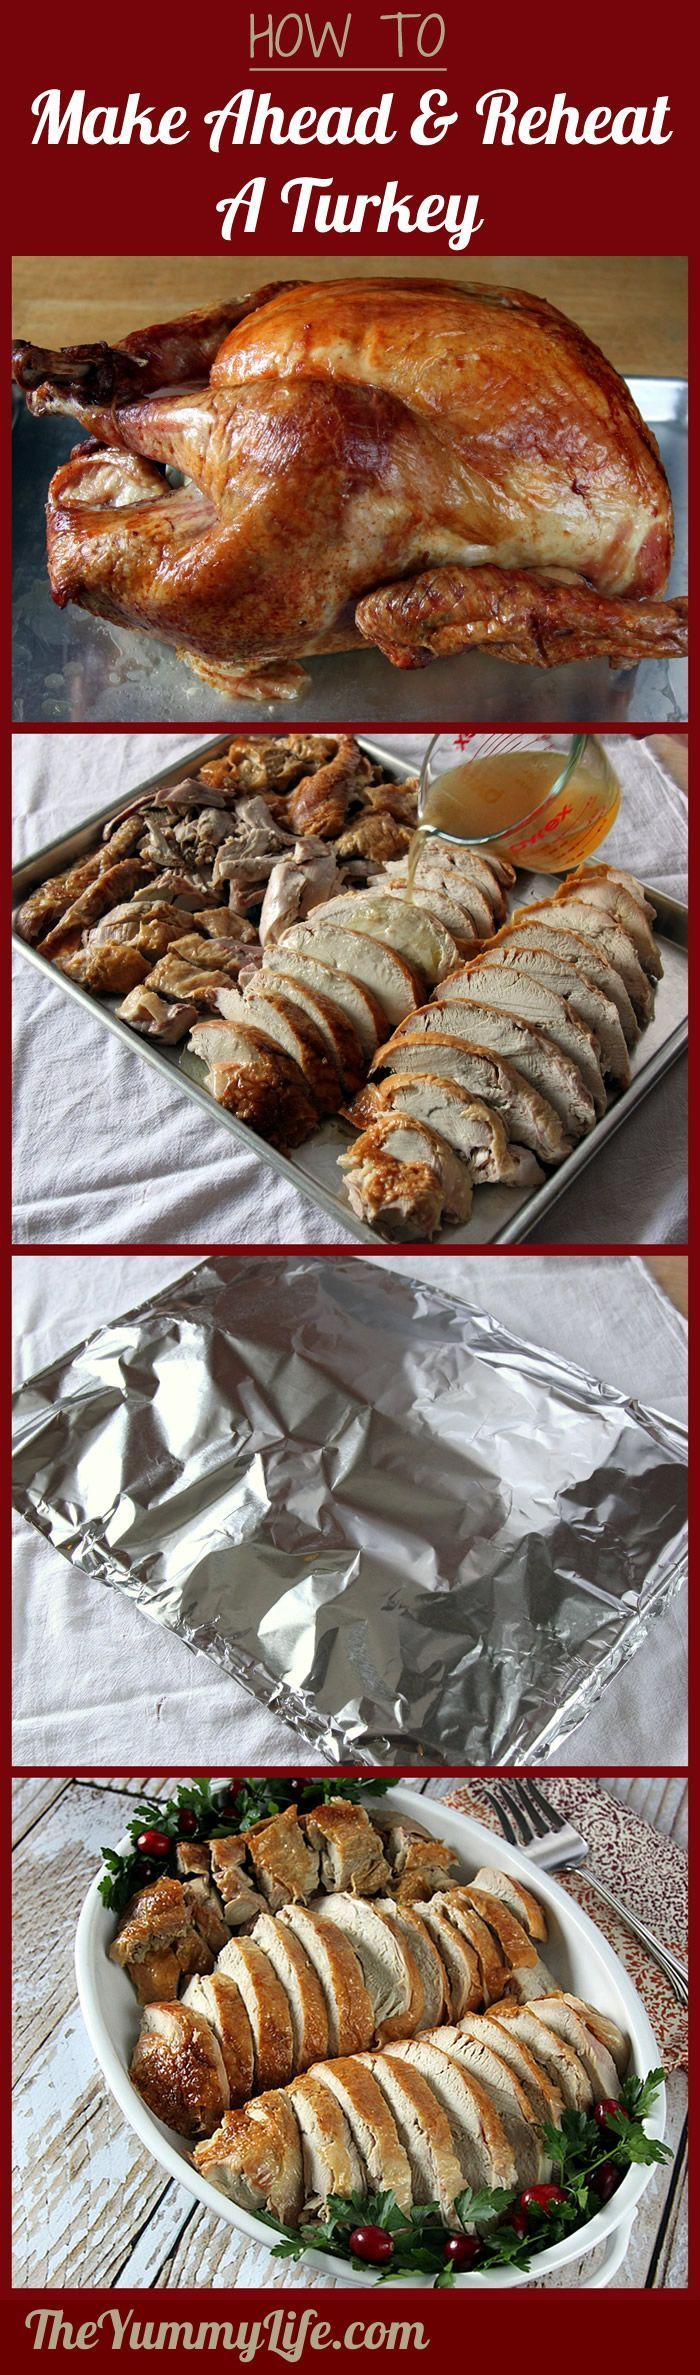 How to Make Ahead and Reheat Turkey. A holiday meal stress buster! Simple steps to cooking and carving the turkey ahead of time and reheating it to moist perfection. from The Yummy Life